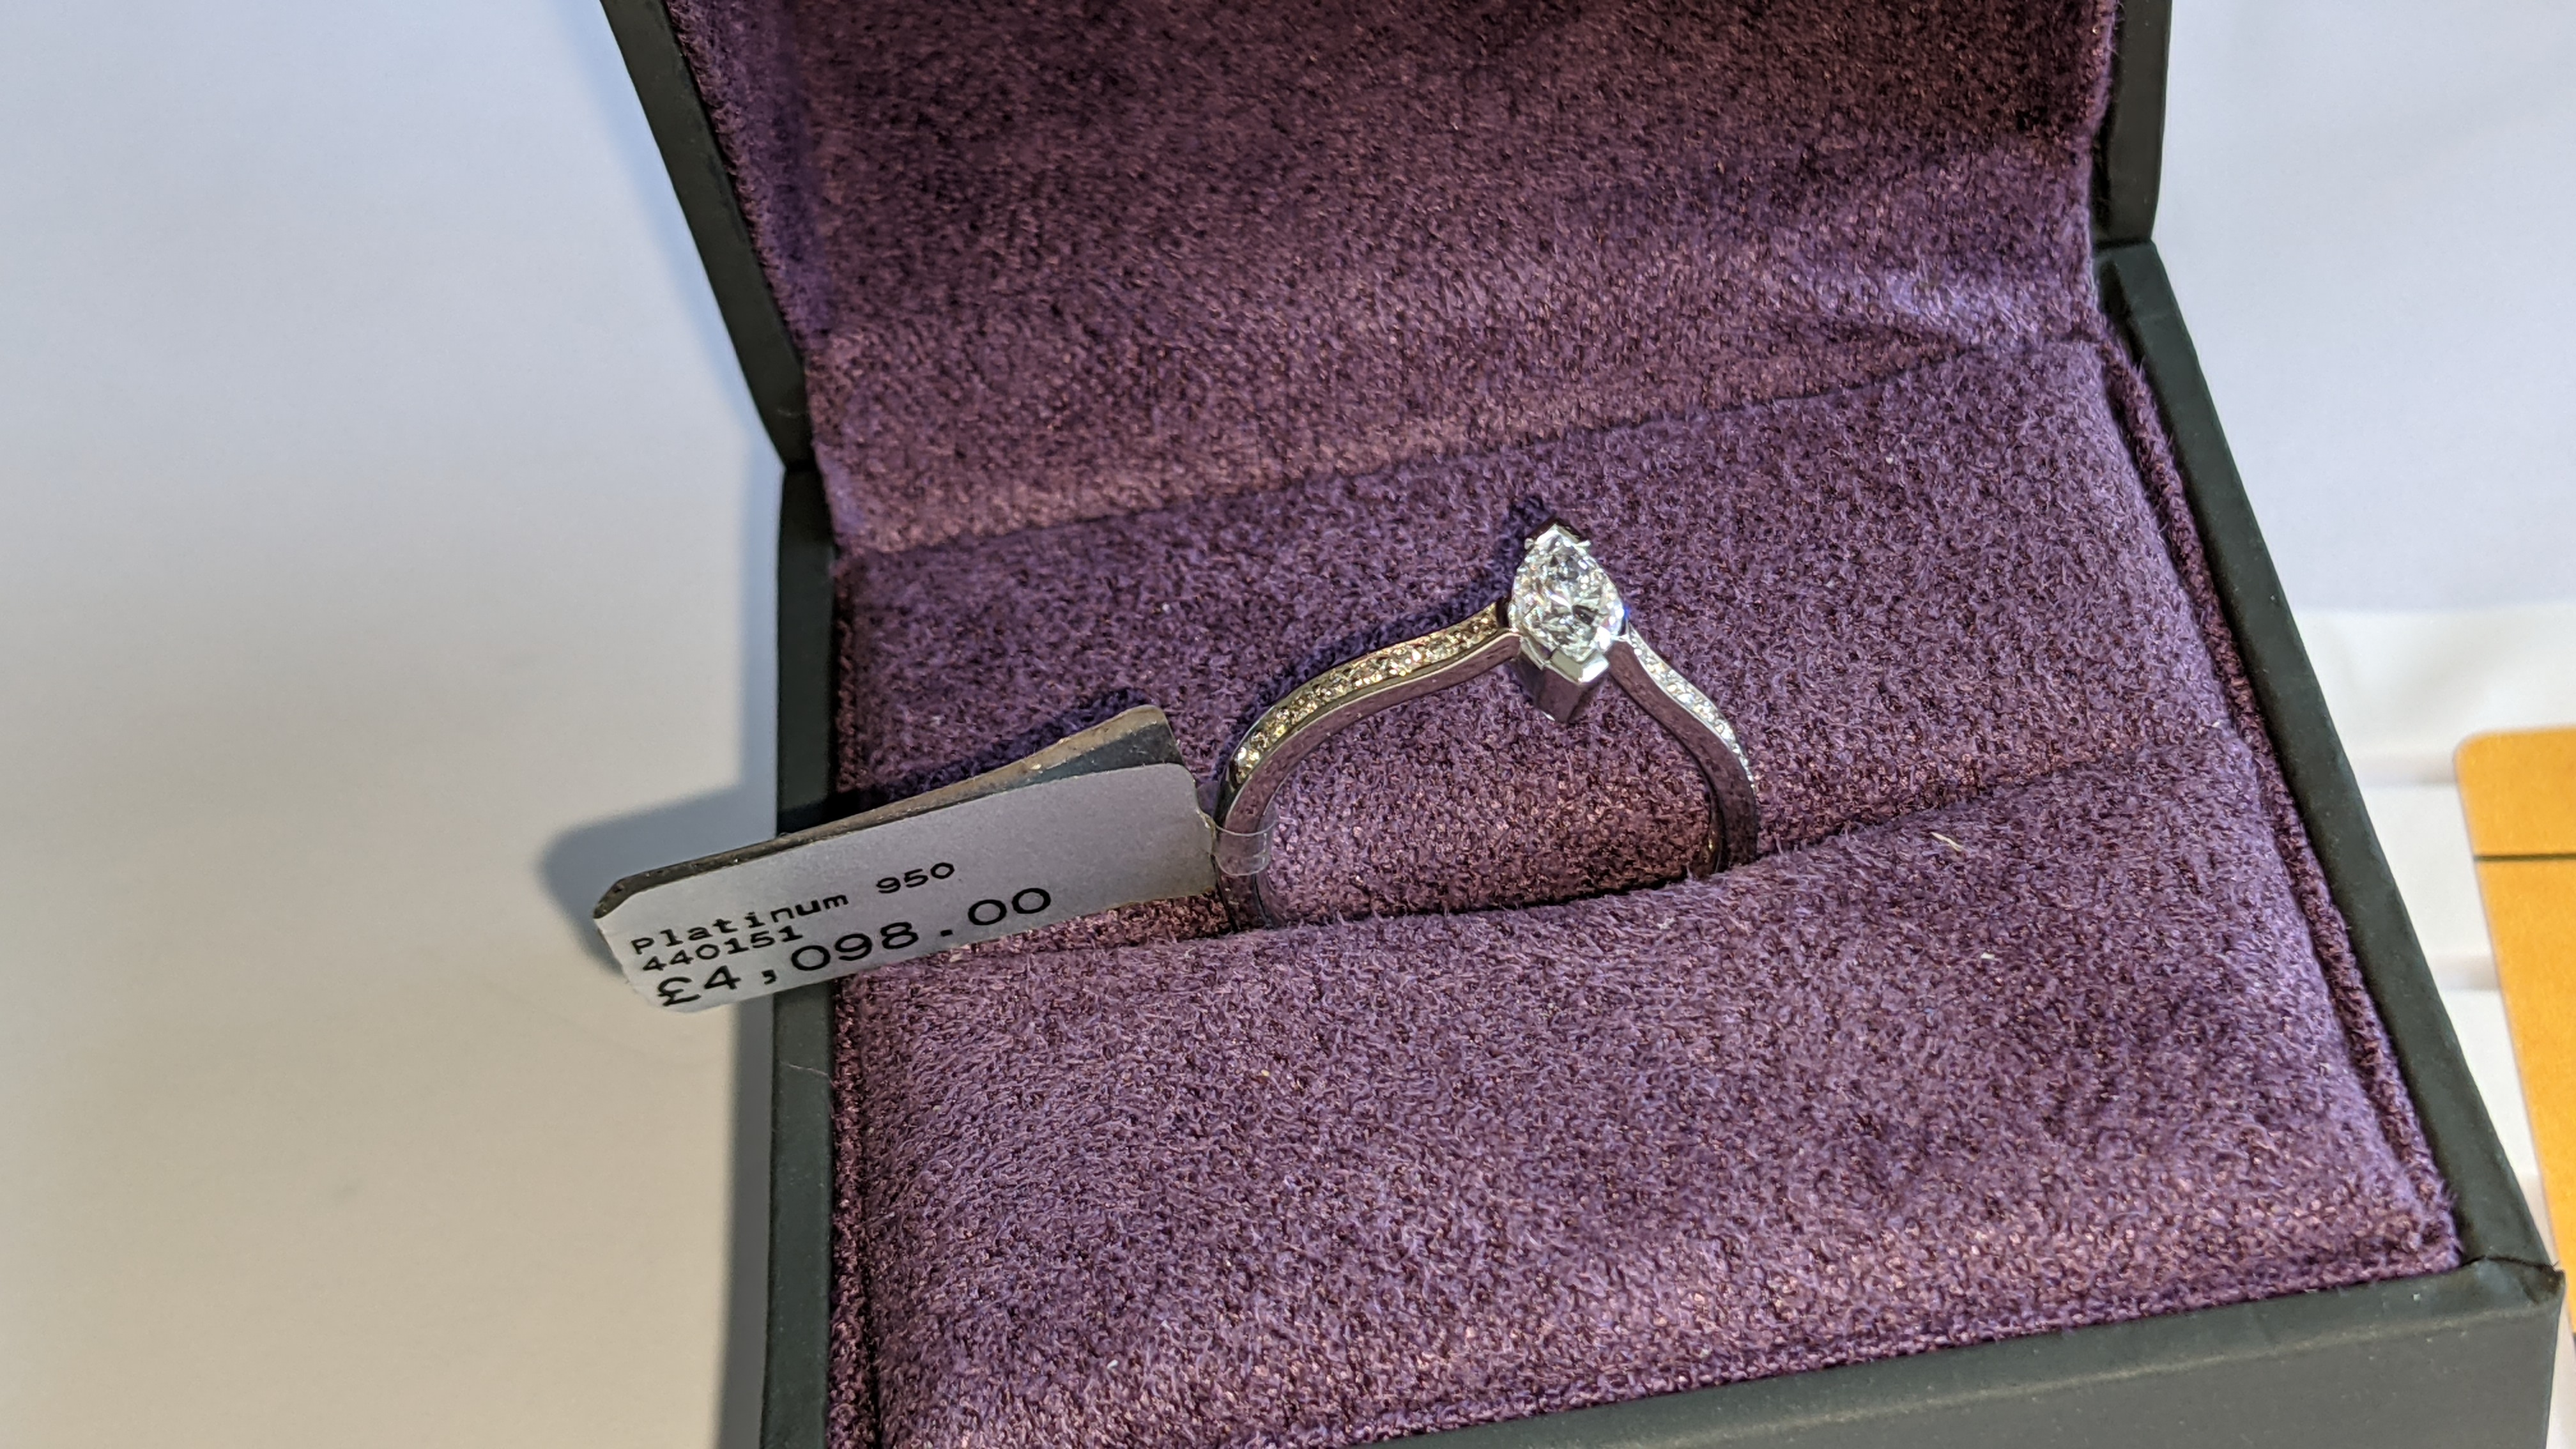 Platinum 950 ring with marquise shaped central diamond plus diamonds on the shoulders either side, t - Image 2 of 16